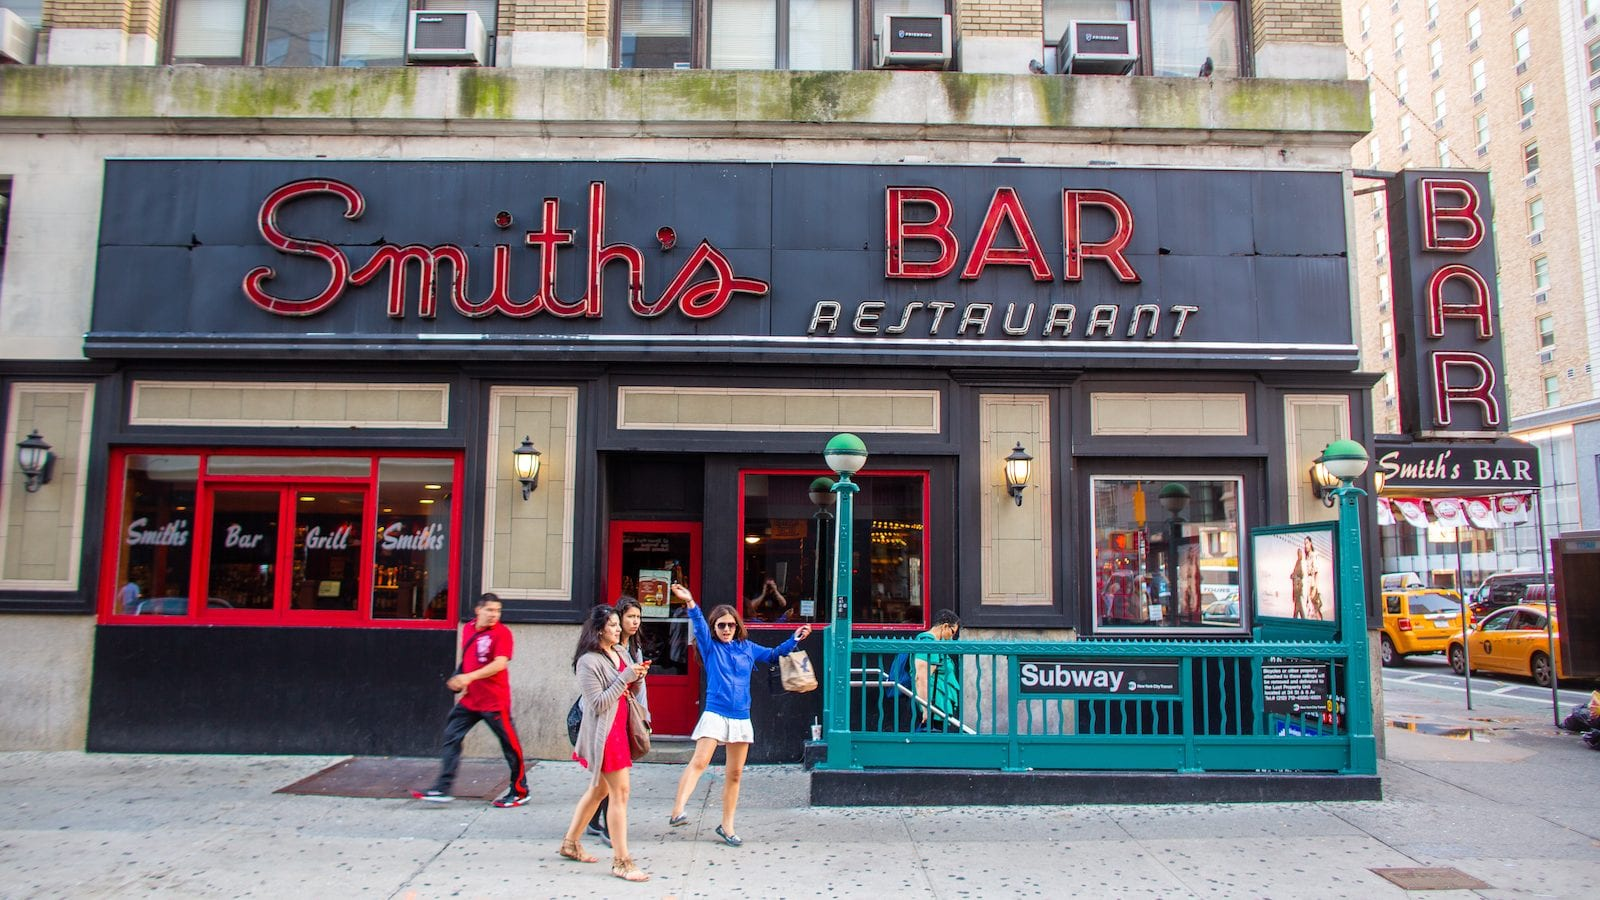 Smith's Bar, USA